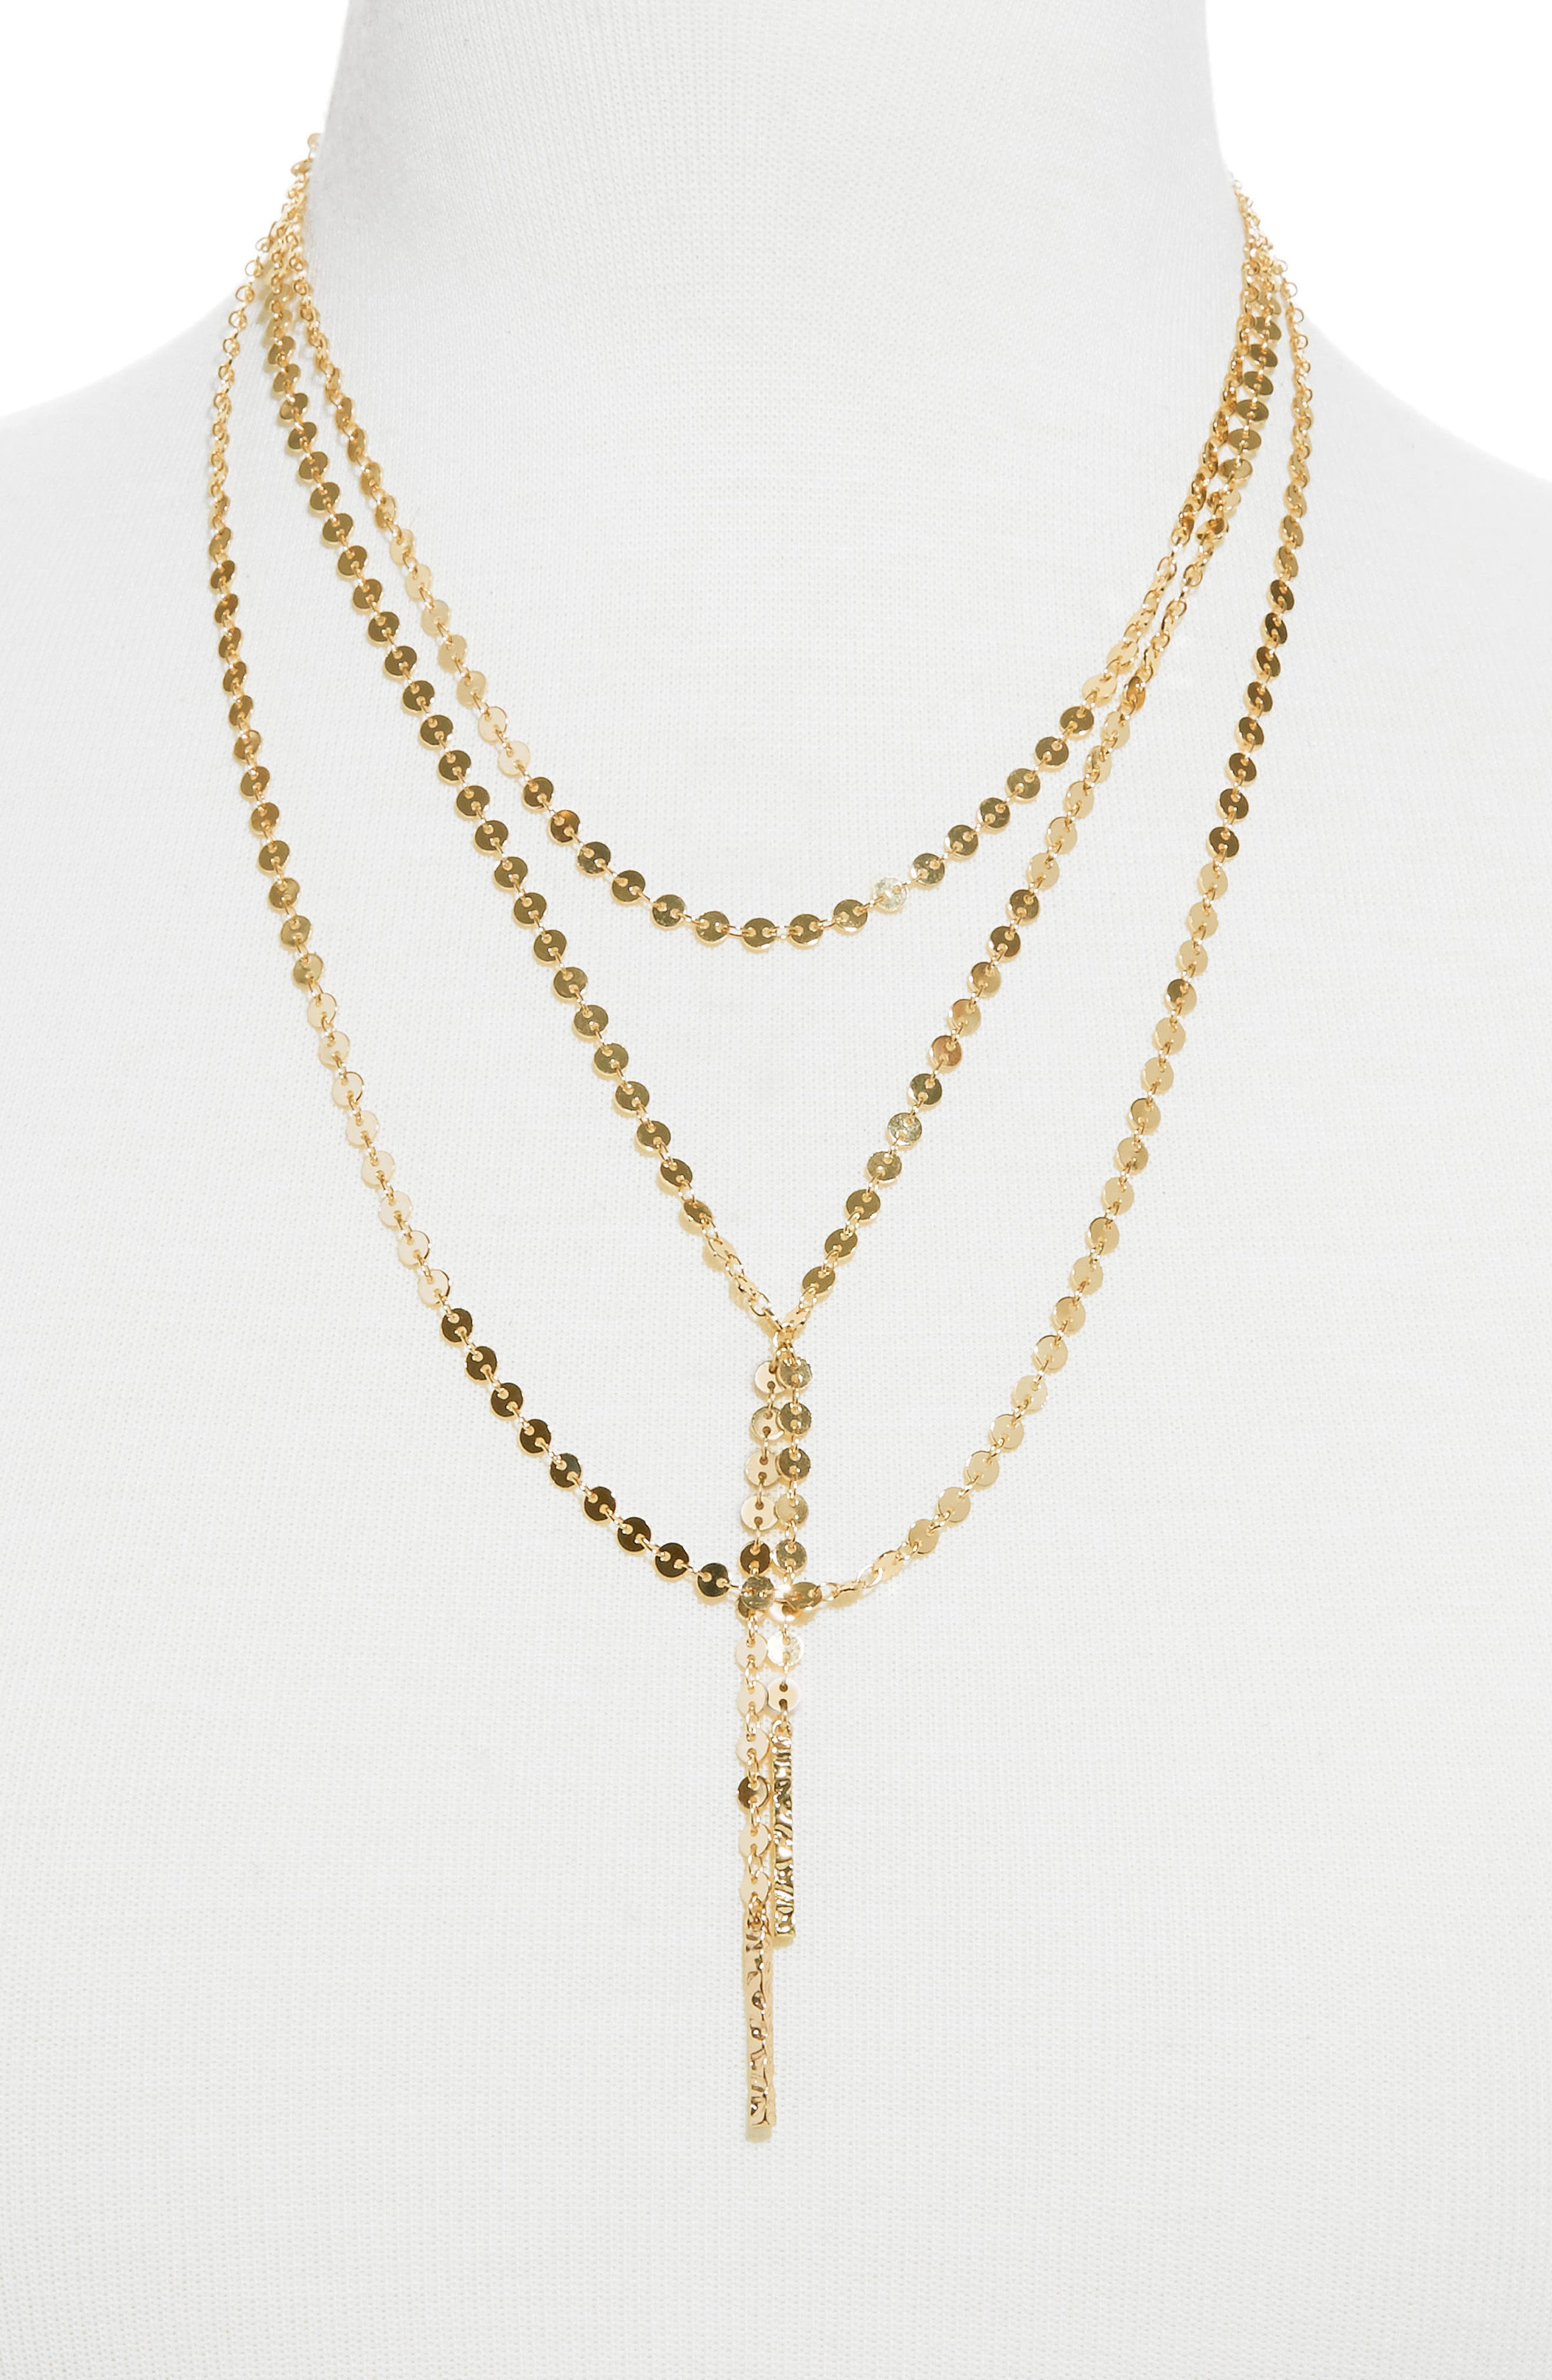 BAUBLEBAR Amber Layered Chain Y-Necklace, Main, color, GOLD